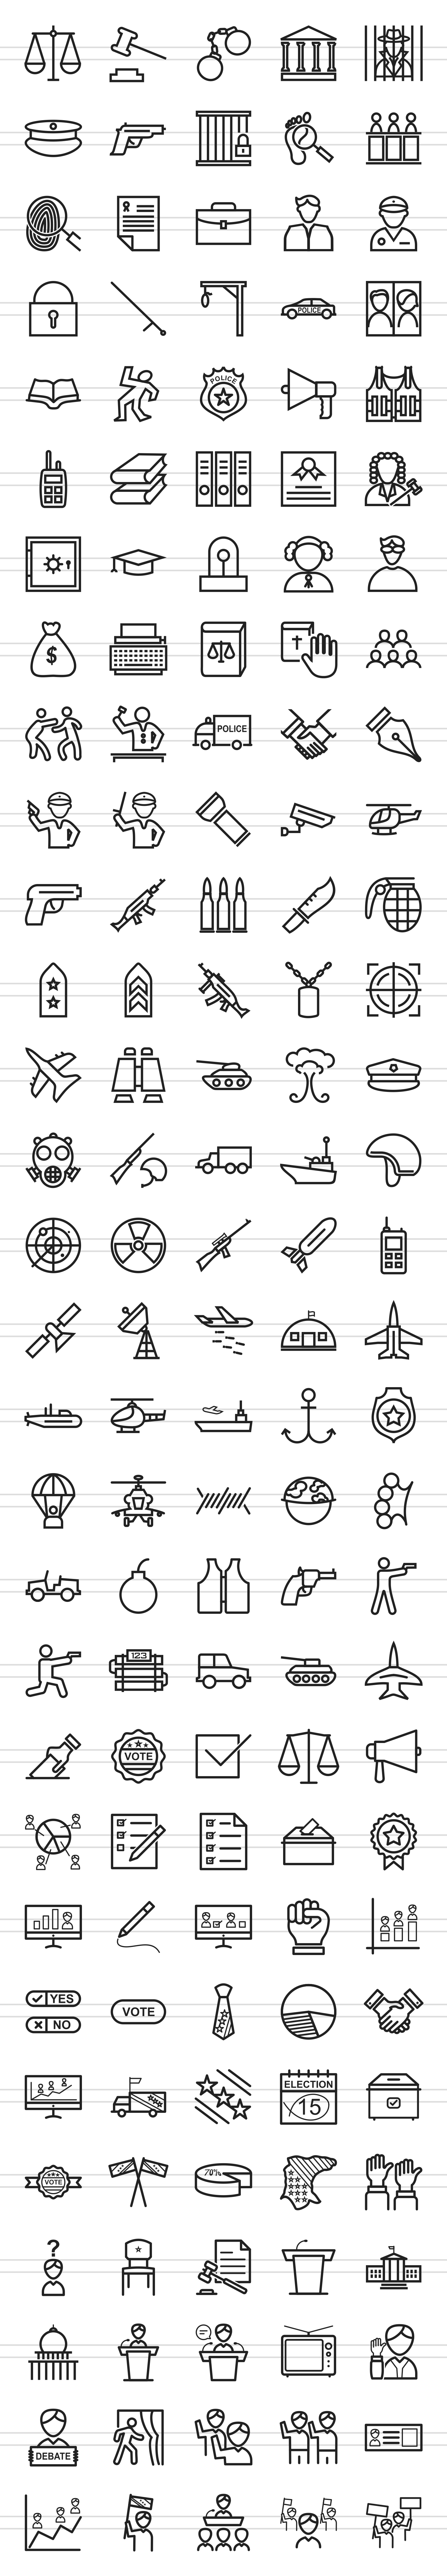 150 Law & Order Line Icons example image 2